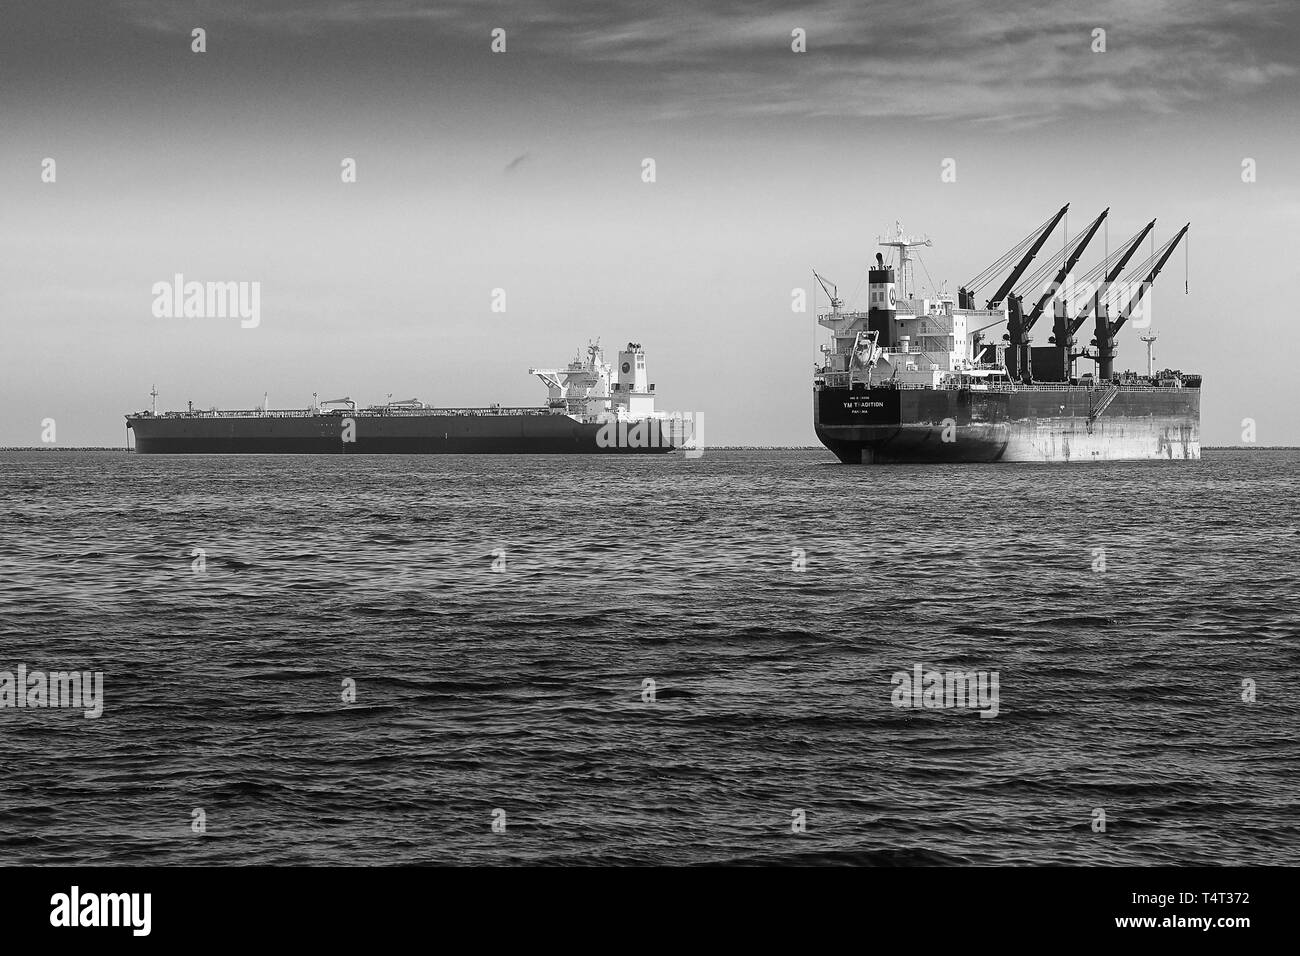 Black And White Photo Of The Bulk Carrier, YM Tradition And The Supertanker, Eagle Varna, Anchored In The Port Long Beach, California. USA. - Stock Image